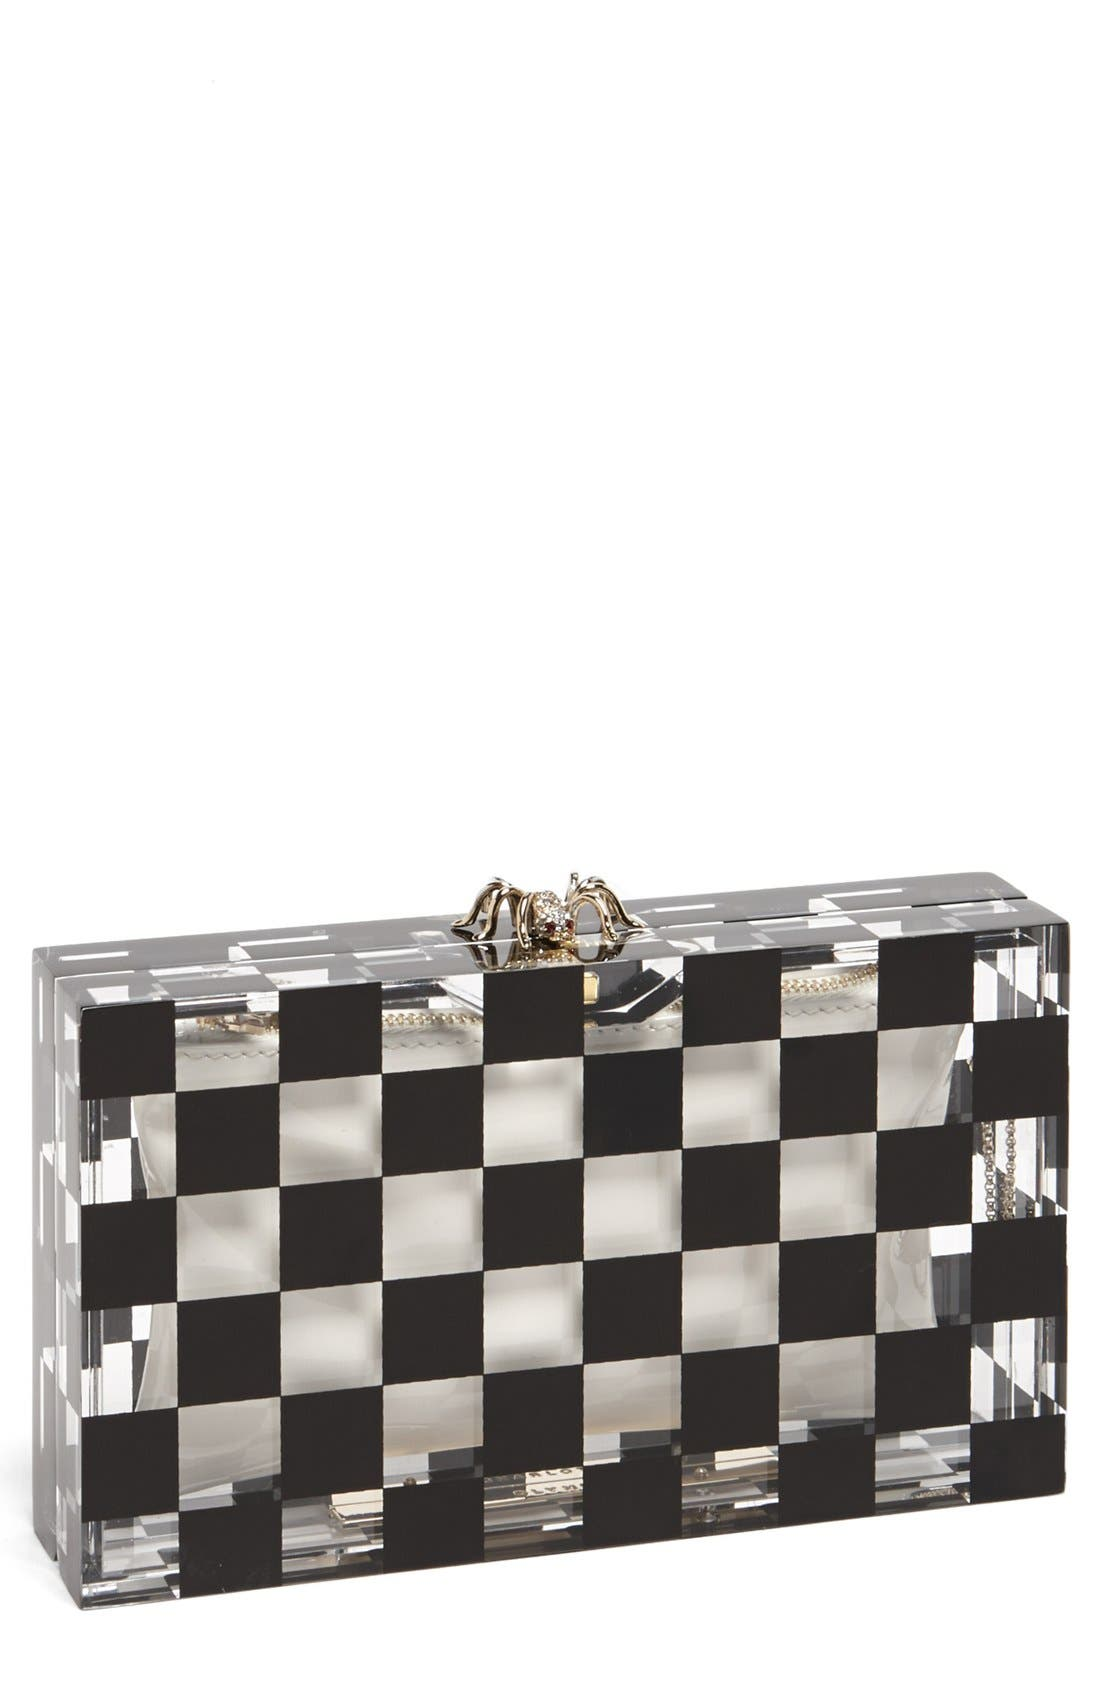 Alternate Image 1 Selected - Charlotte Olympia 'Pandora Squared' Clutch